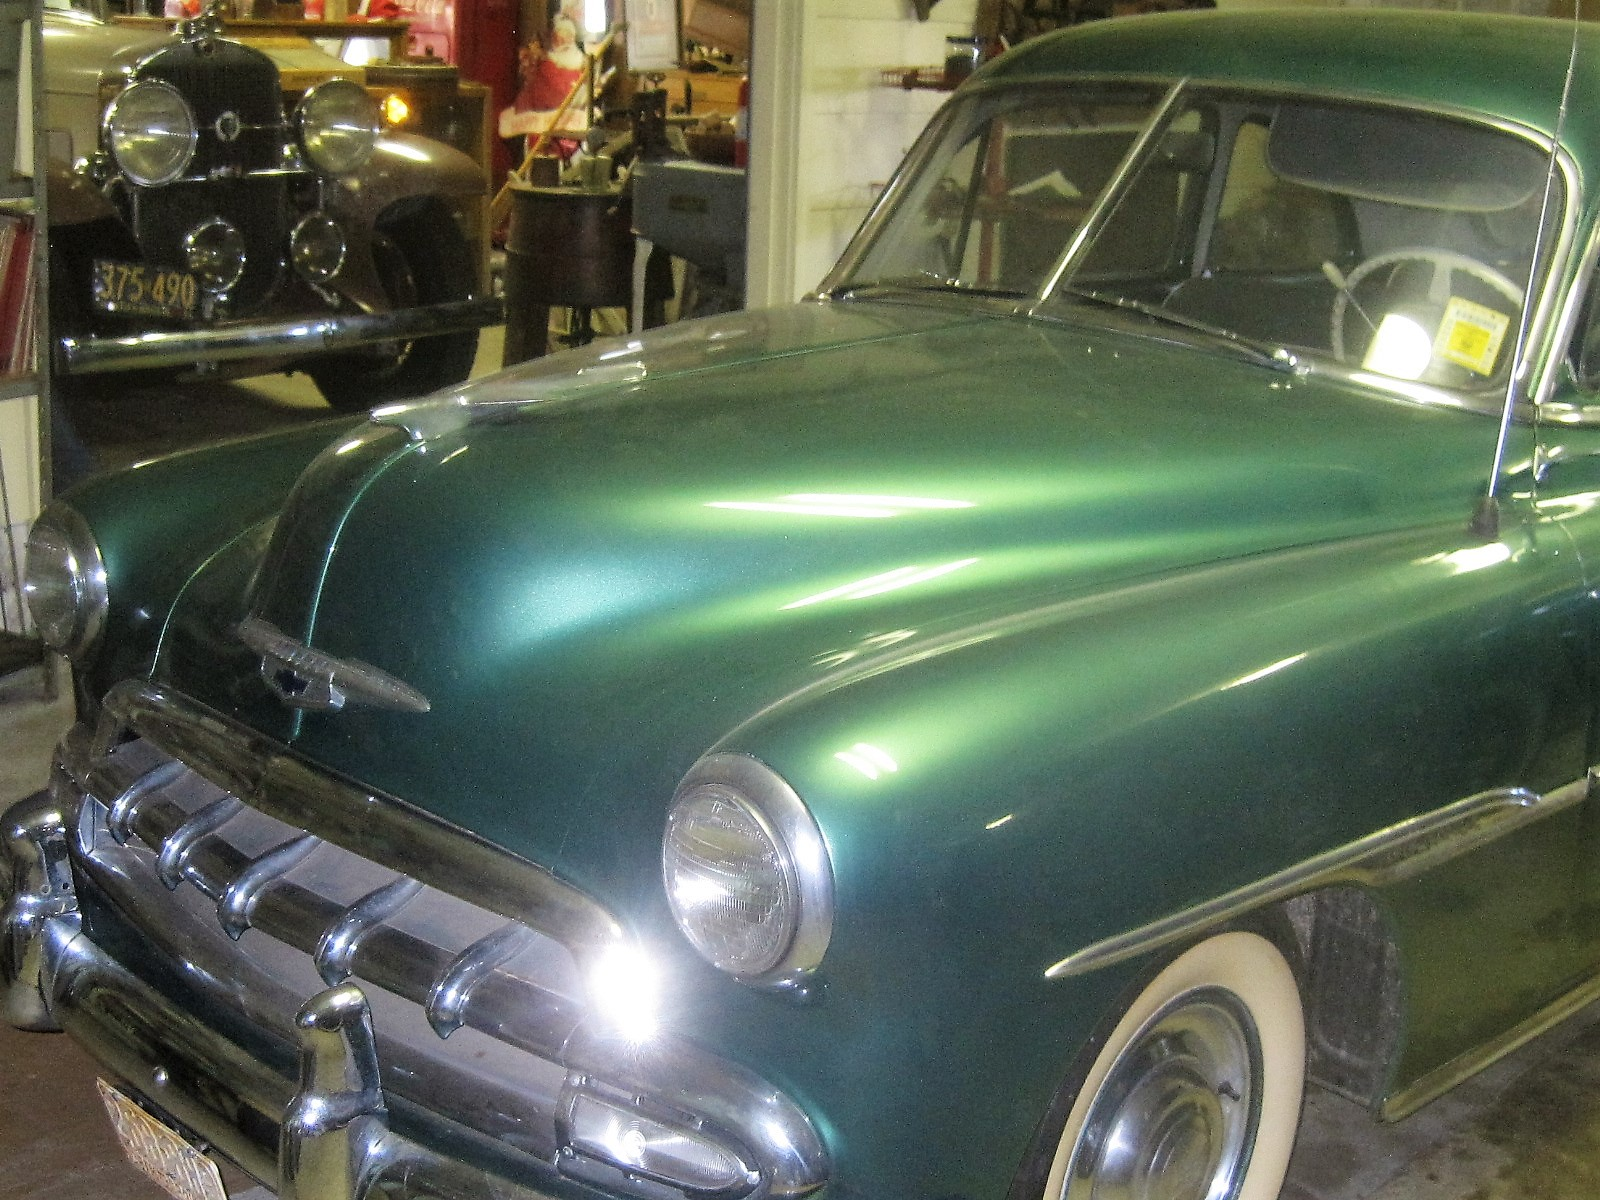 1951 Chevy Deluxe 2 Door Sedan With Automatic Transmission For Sale Chevrolet Coupe Img 3443